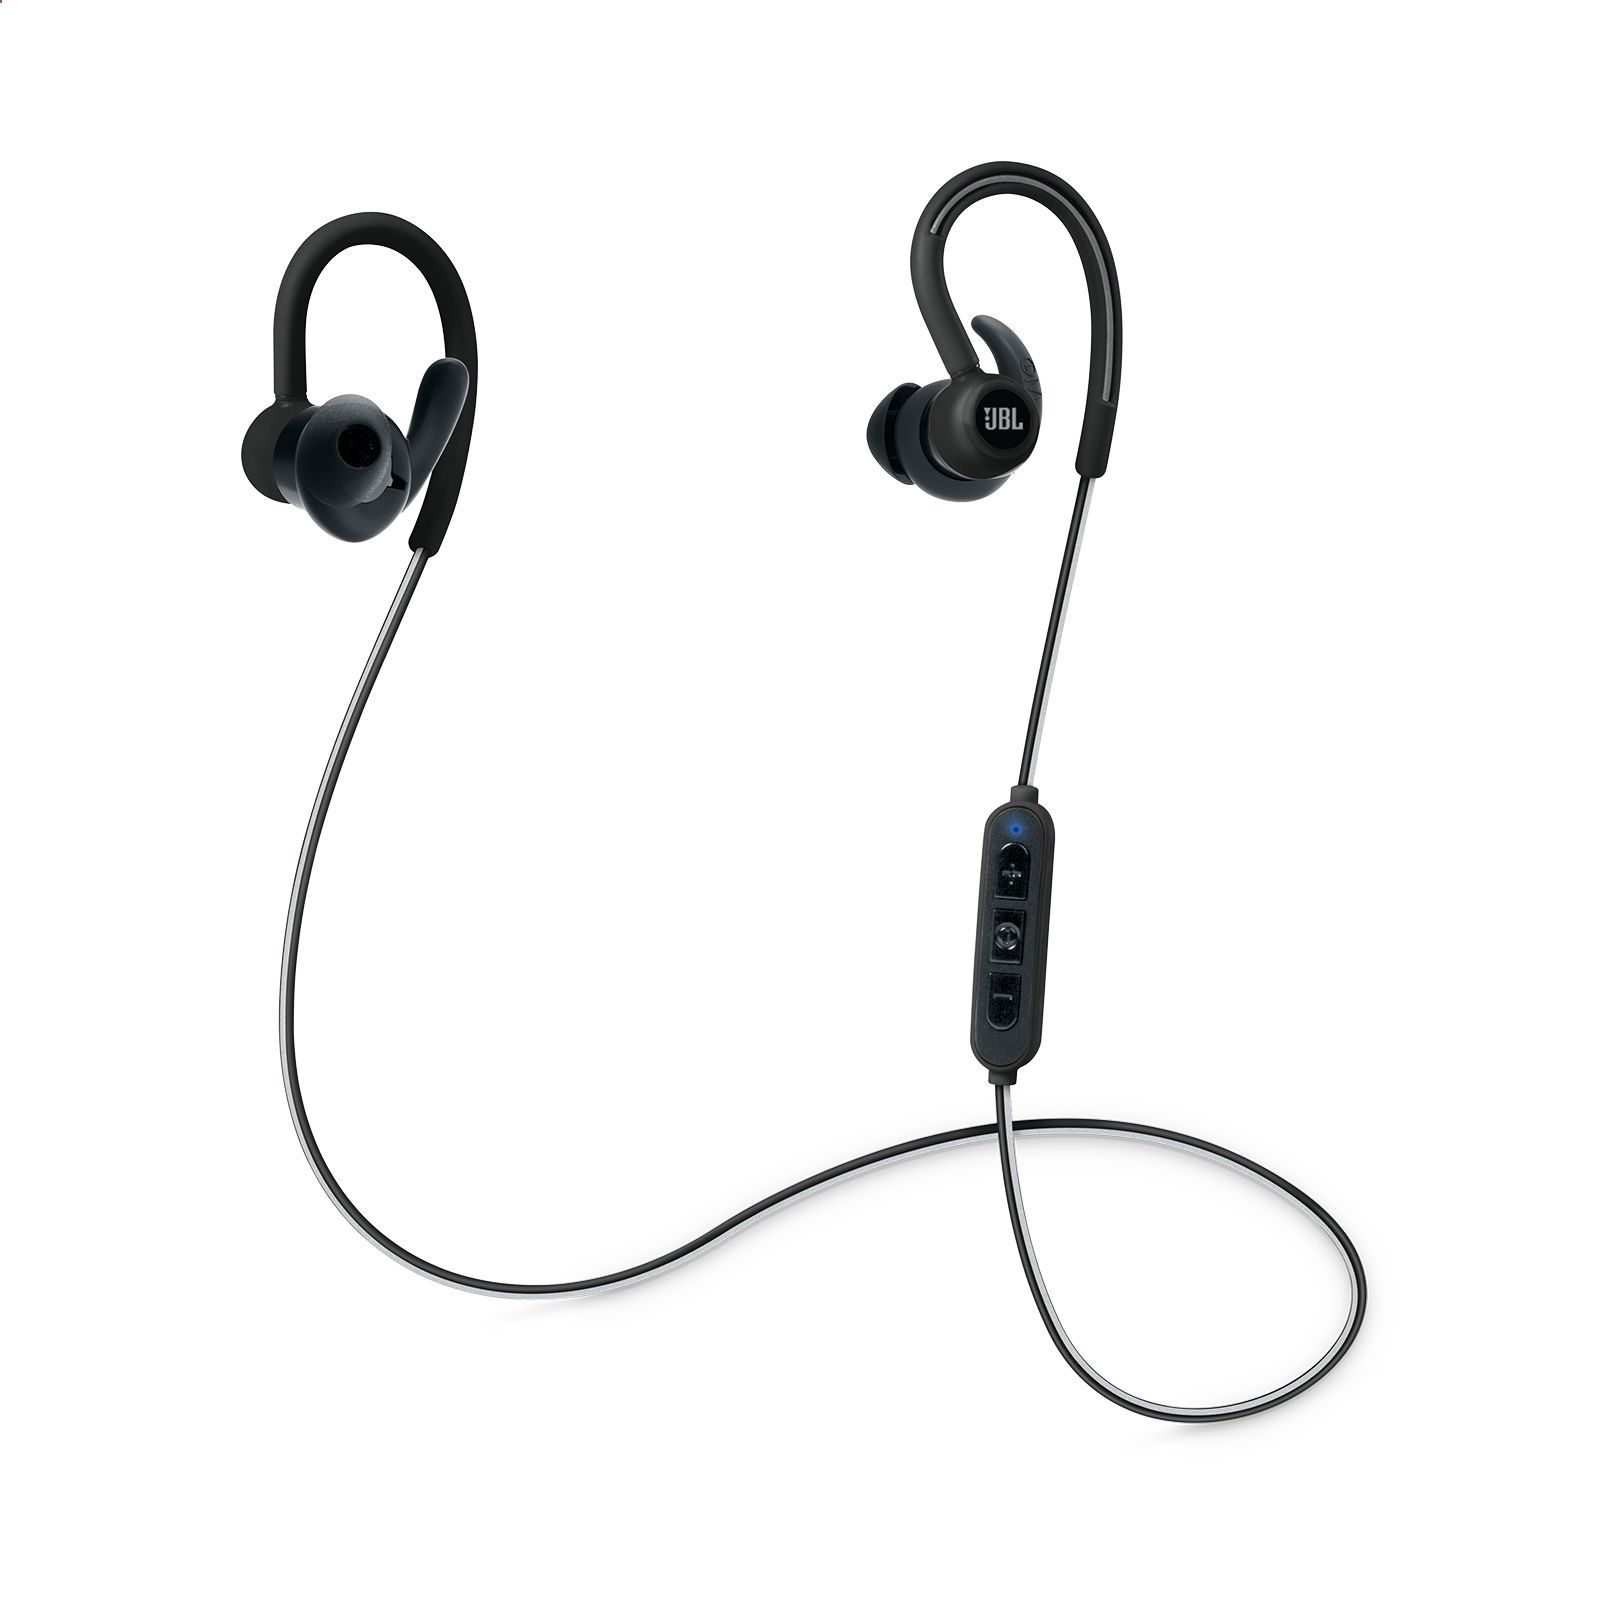 Sports Headphones Jbl Reflect Contour Secure Fit Wireless In Ear Headset Jbll Sport If You Usually Go Out To Run Walk Or Any Other Which